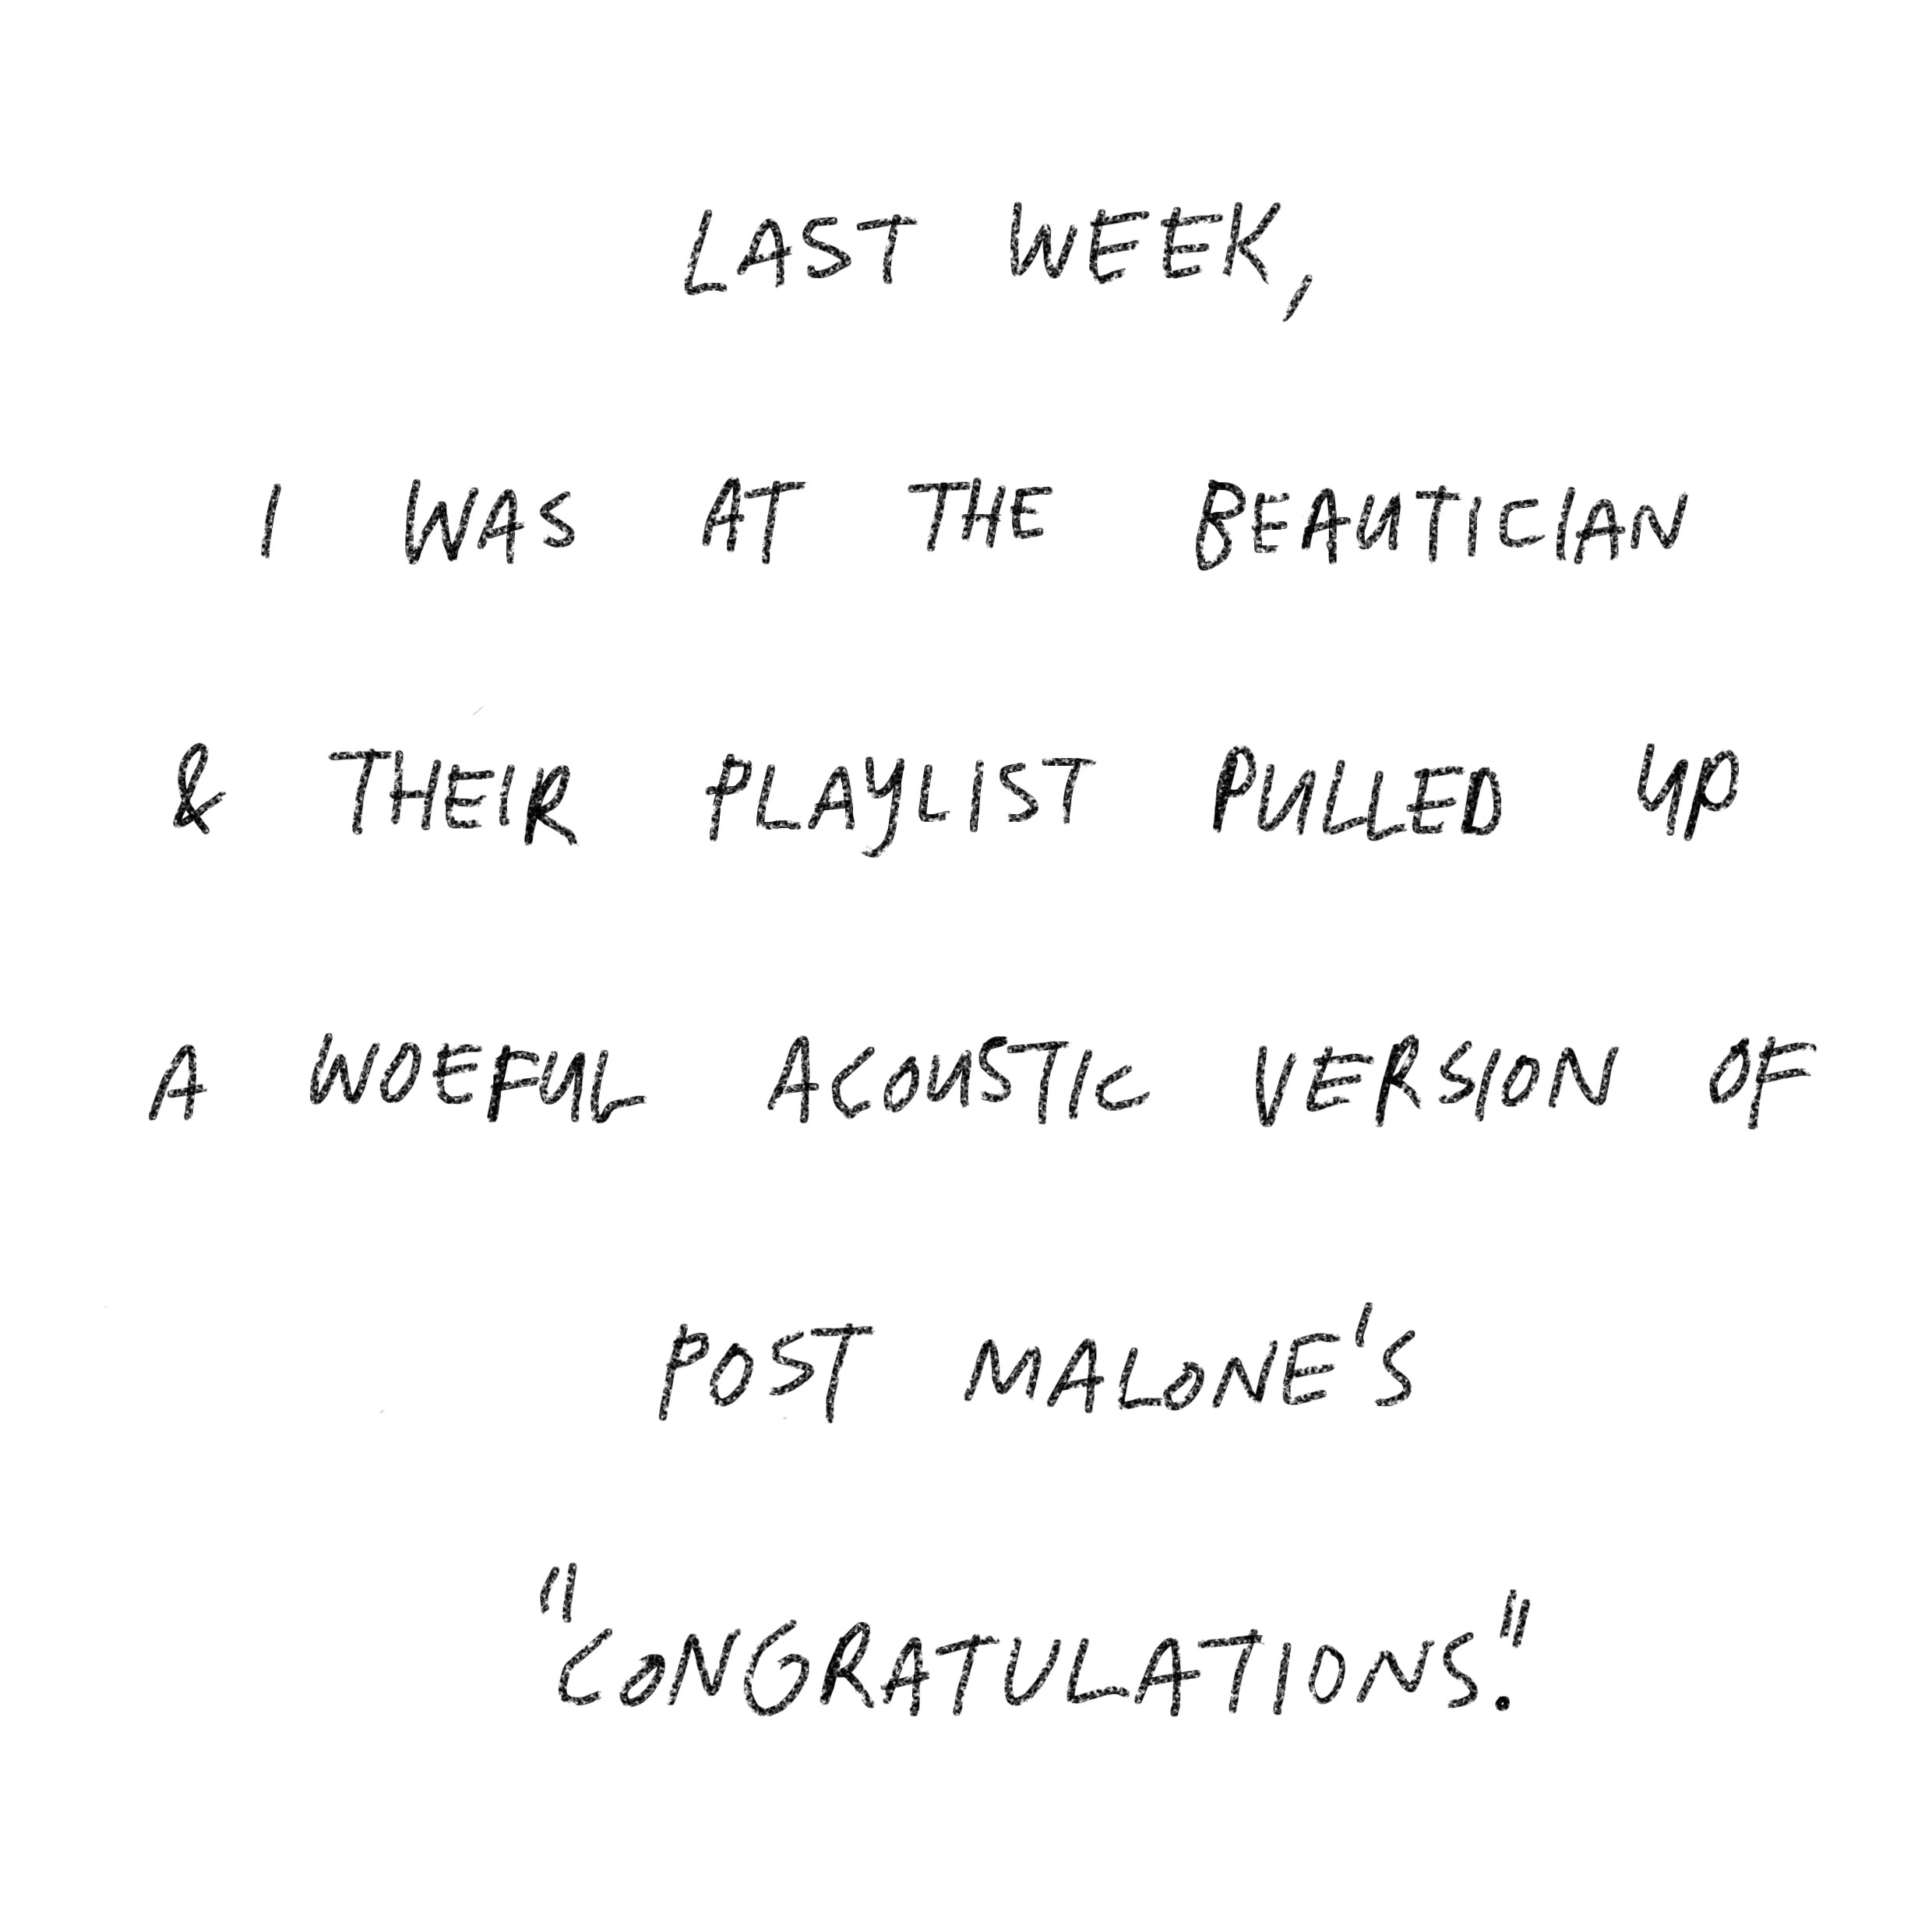 "'Last week, I was at the beautician and their playlist pulled up a woeful acoustic version of Post Malone's ""Congratulations"".'"